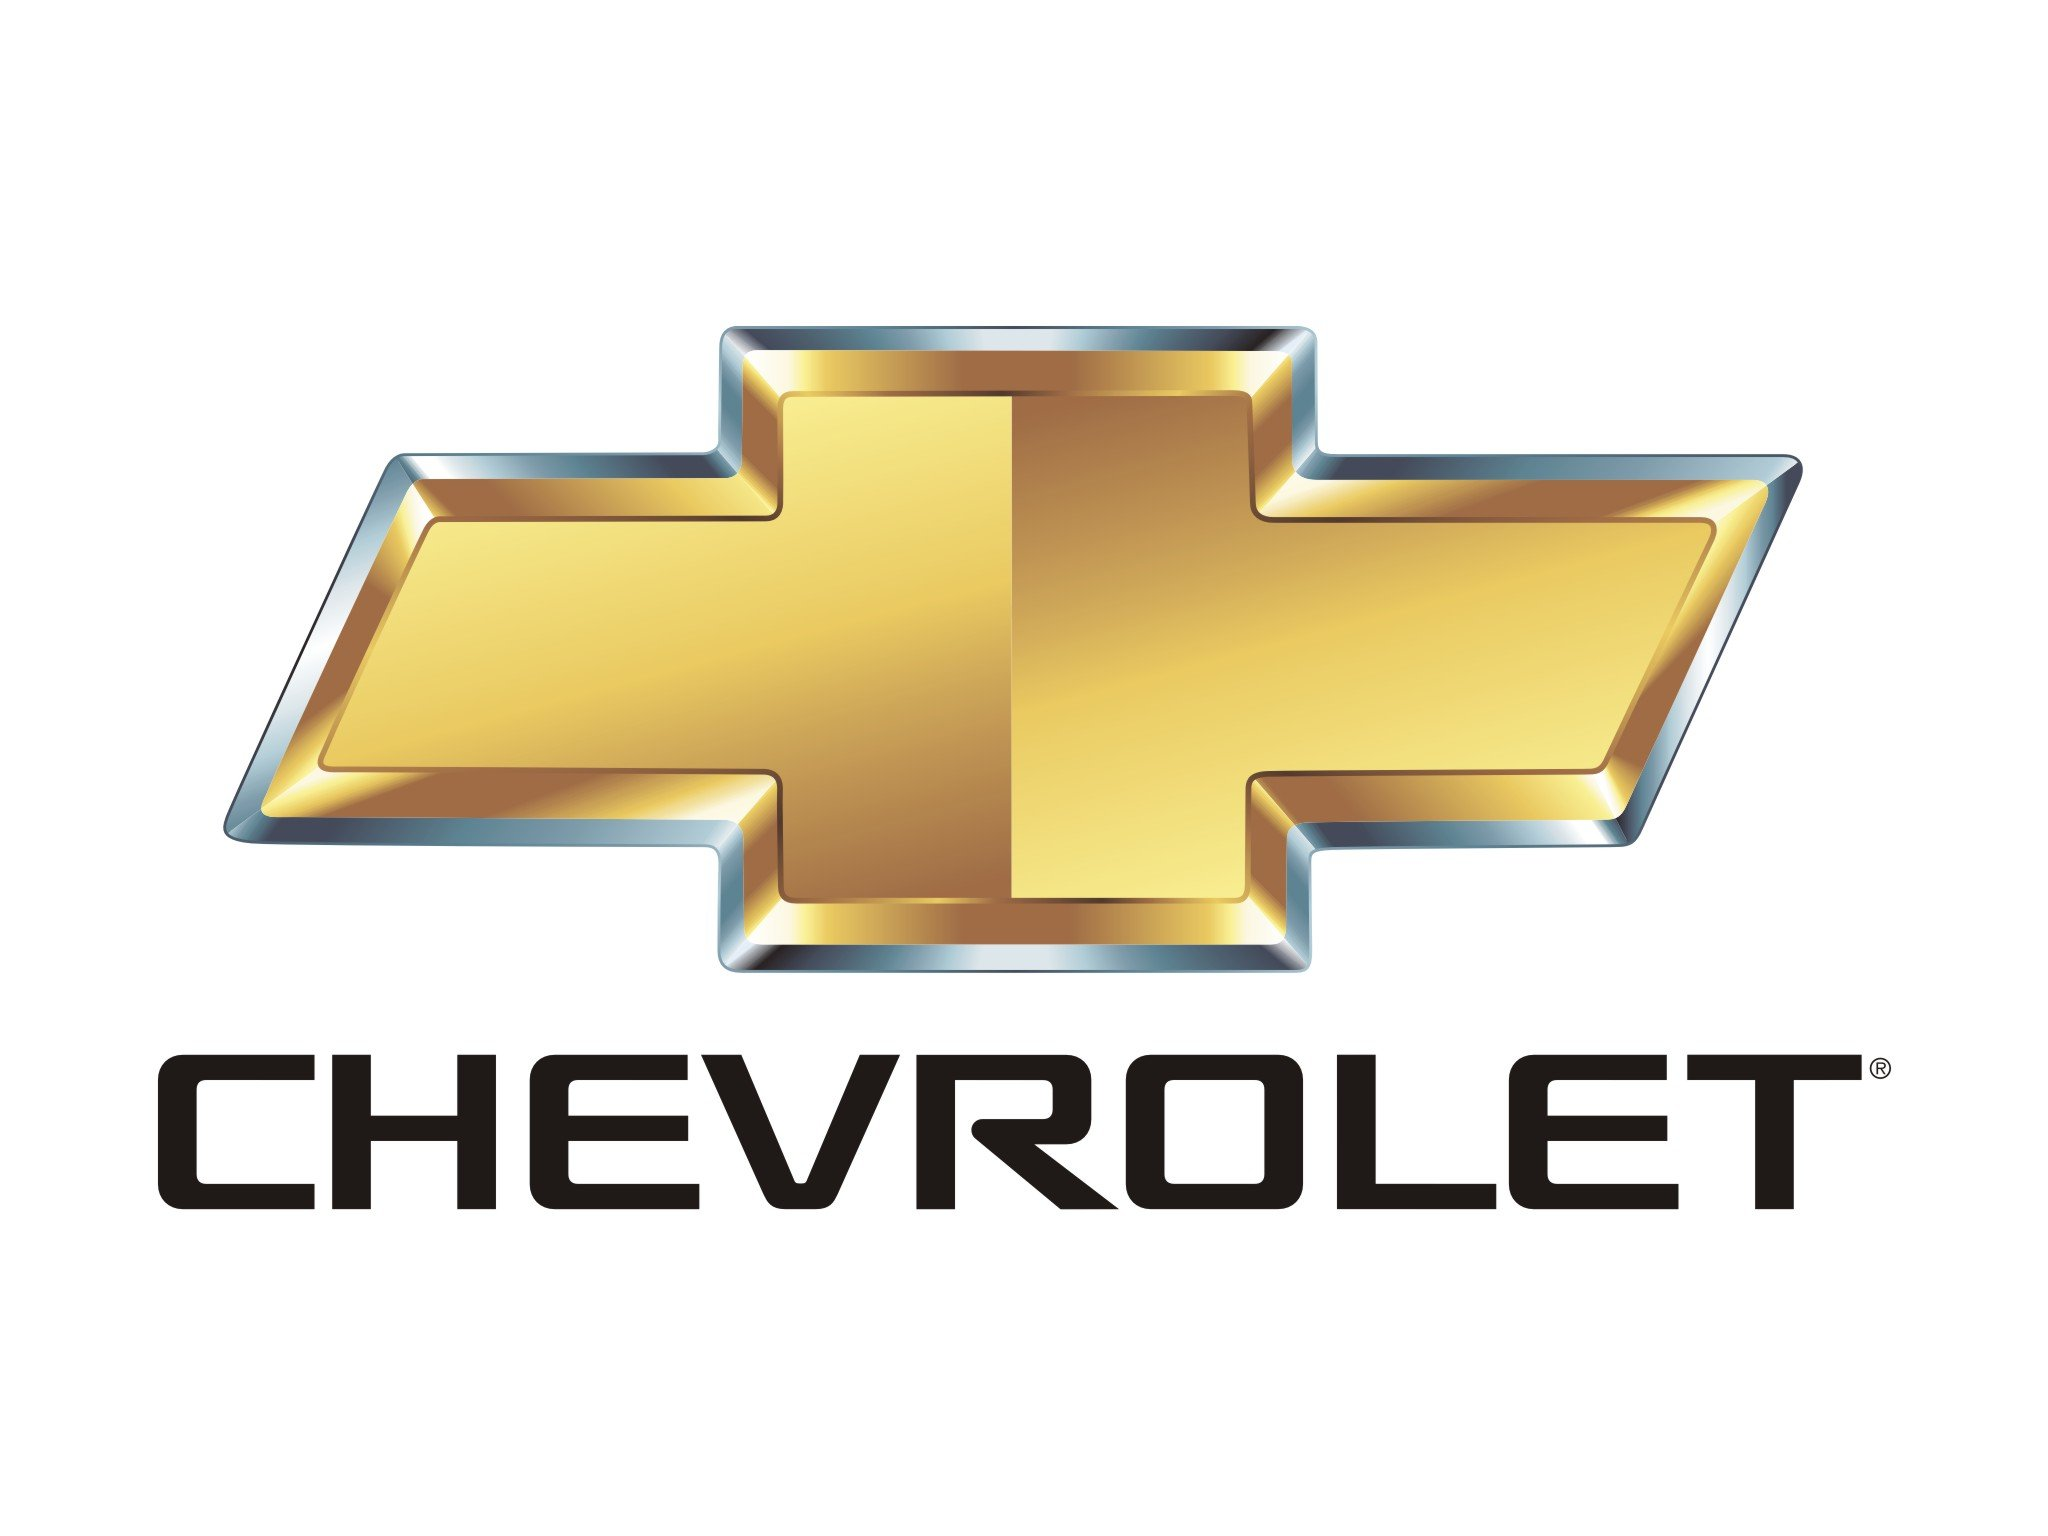 chevy logo wallpaper hd2 - photo #15